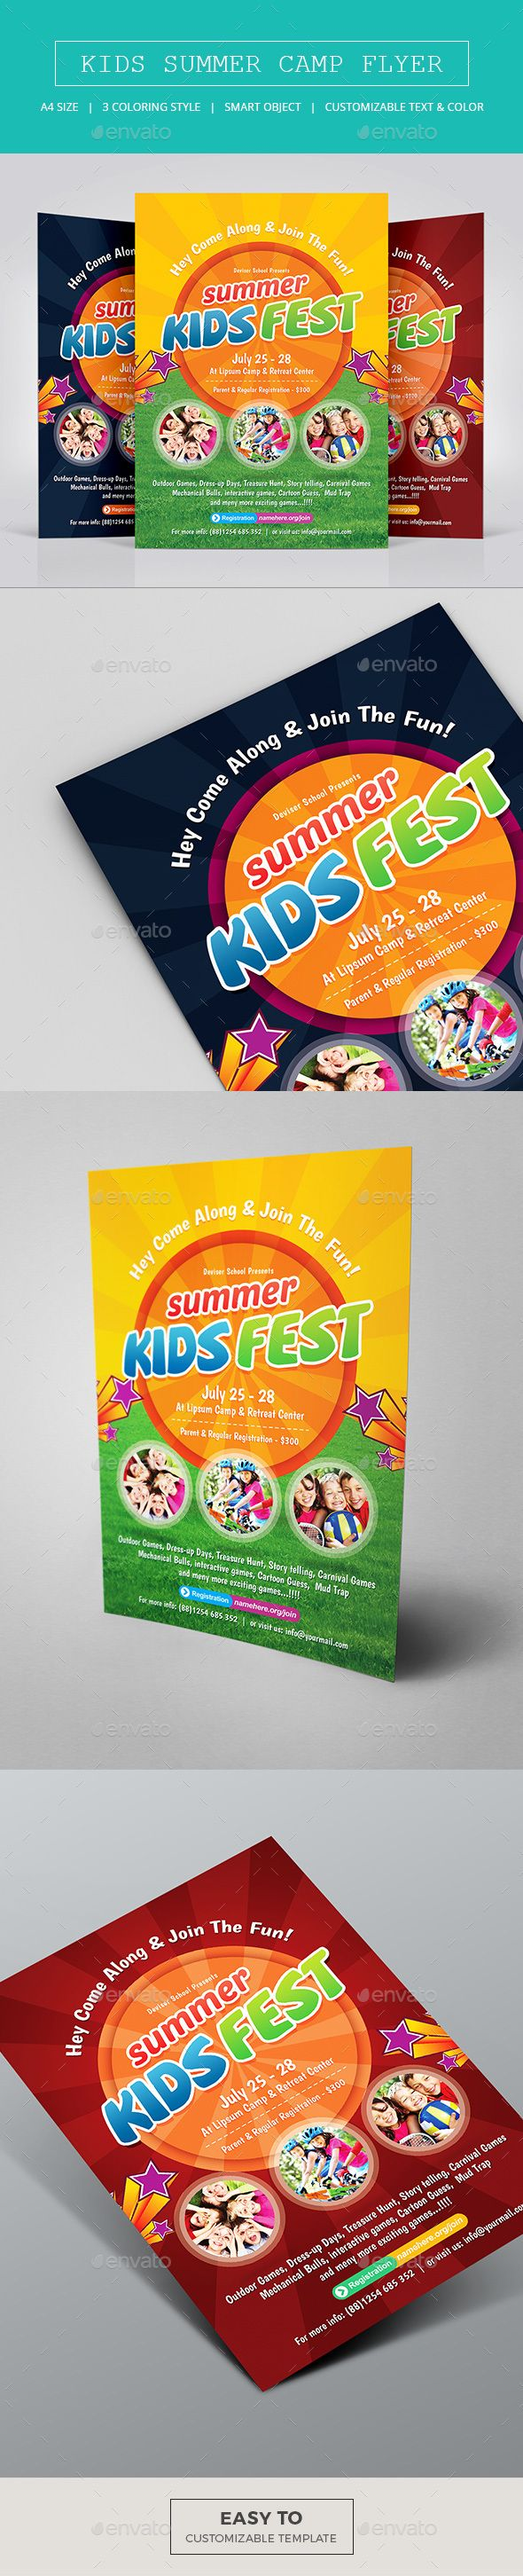 Kids Summer Camp Flyer  Template Flyer Template And Print Templates